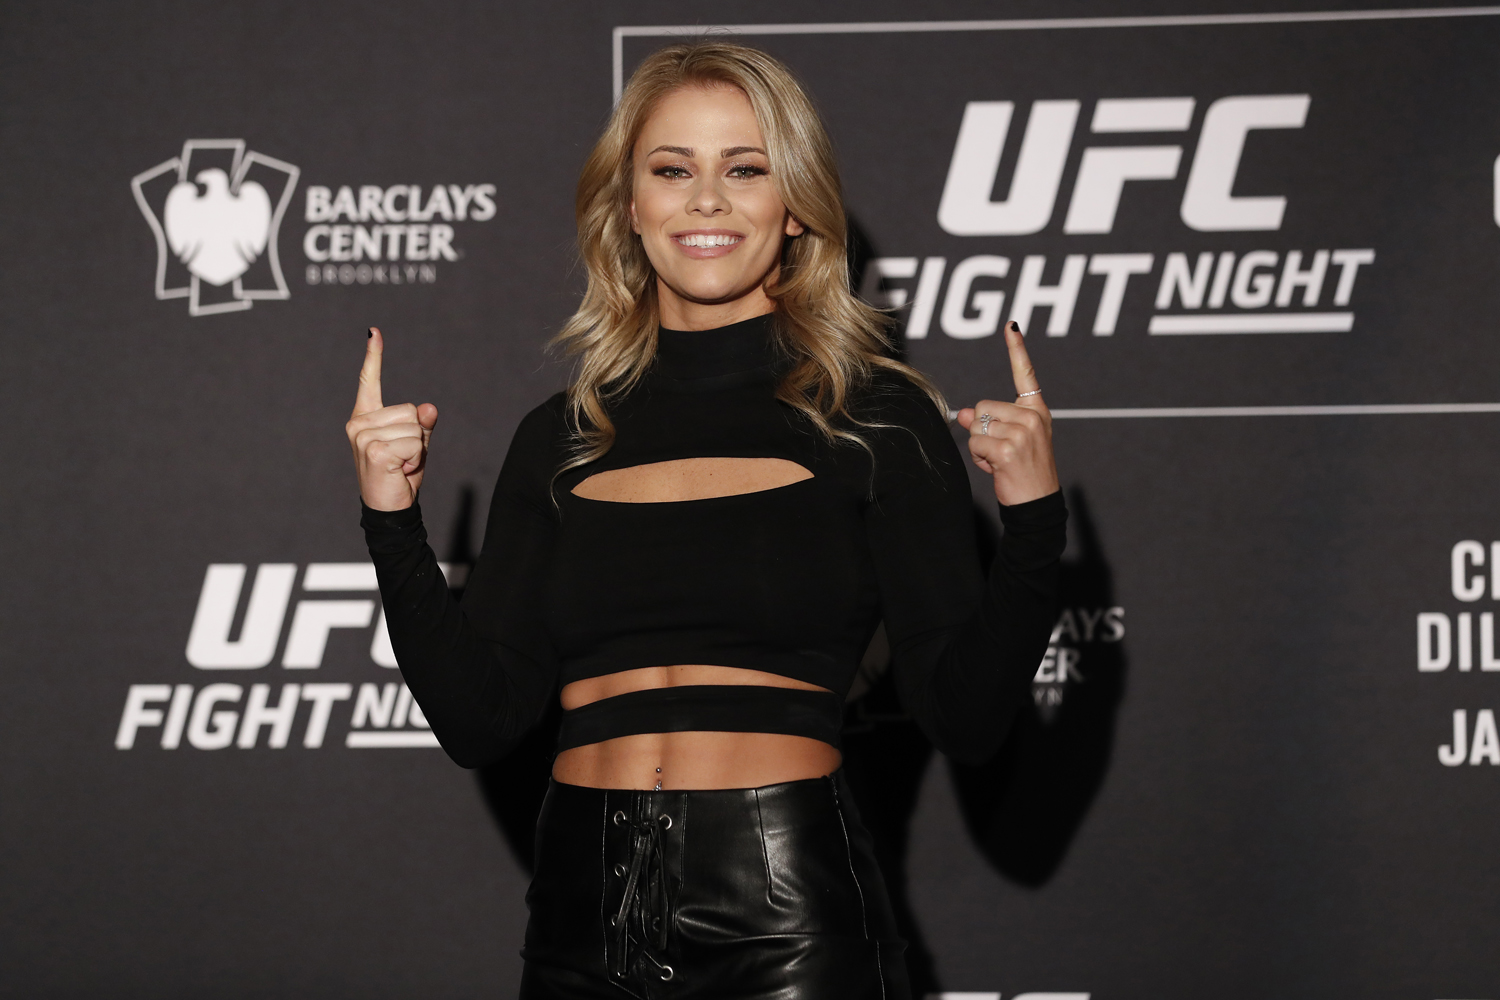 Paige VanZant says she made more from 'Dancing with the Stars' than all of her UFC fights. | Michael Owens/Zuffa LLC/Zuffa LLC